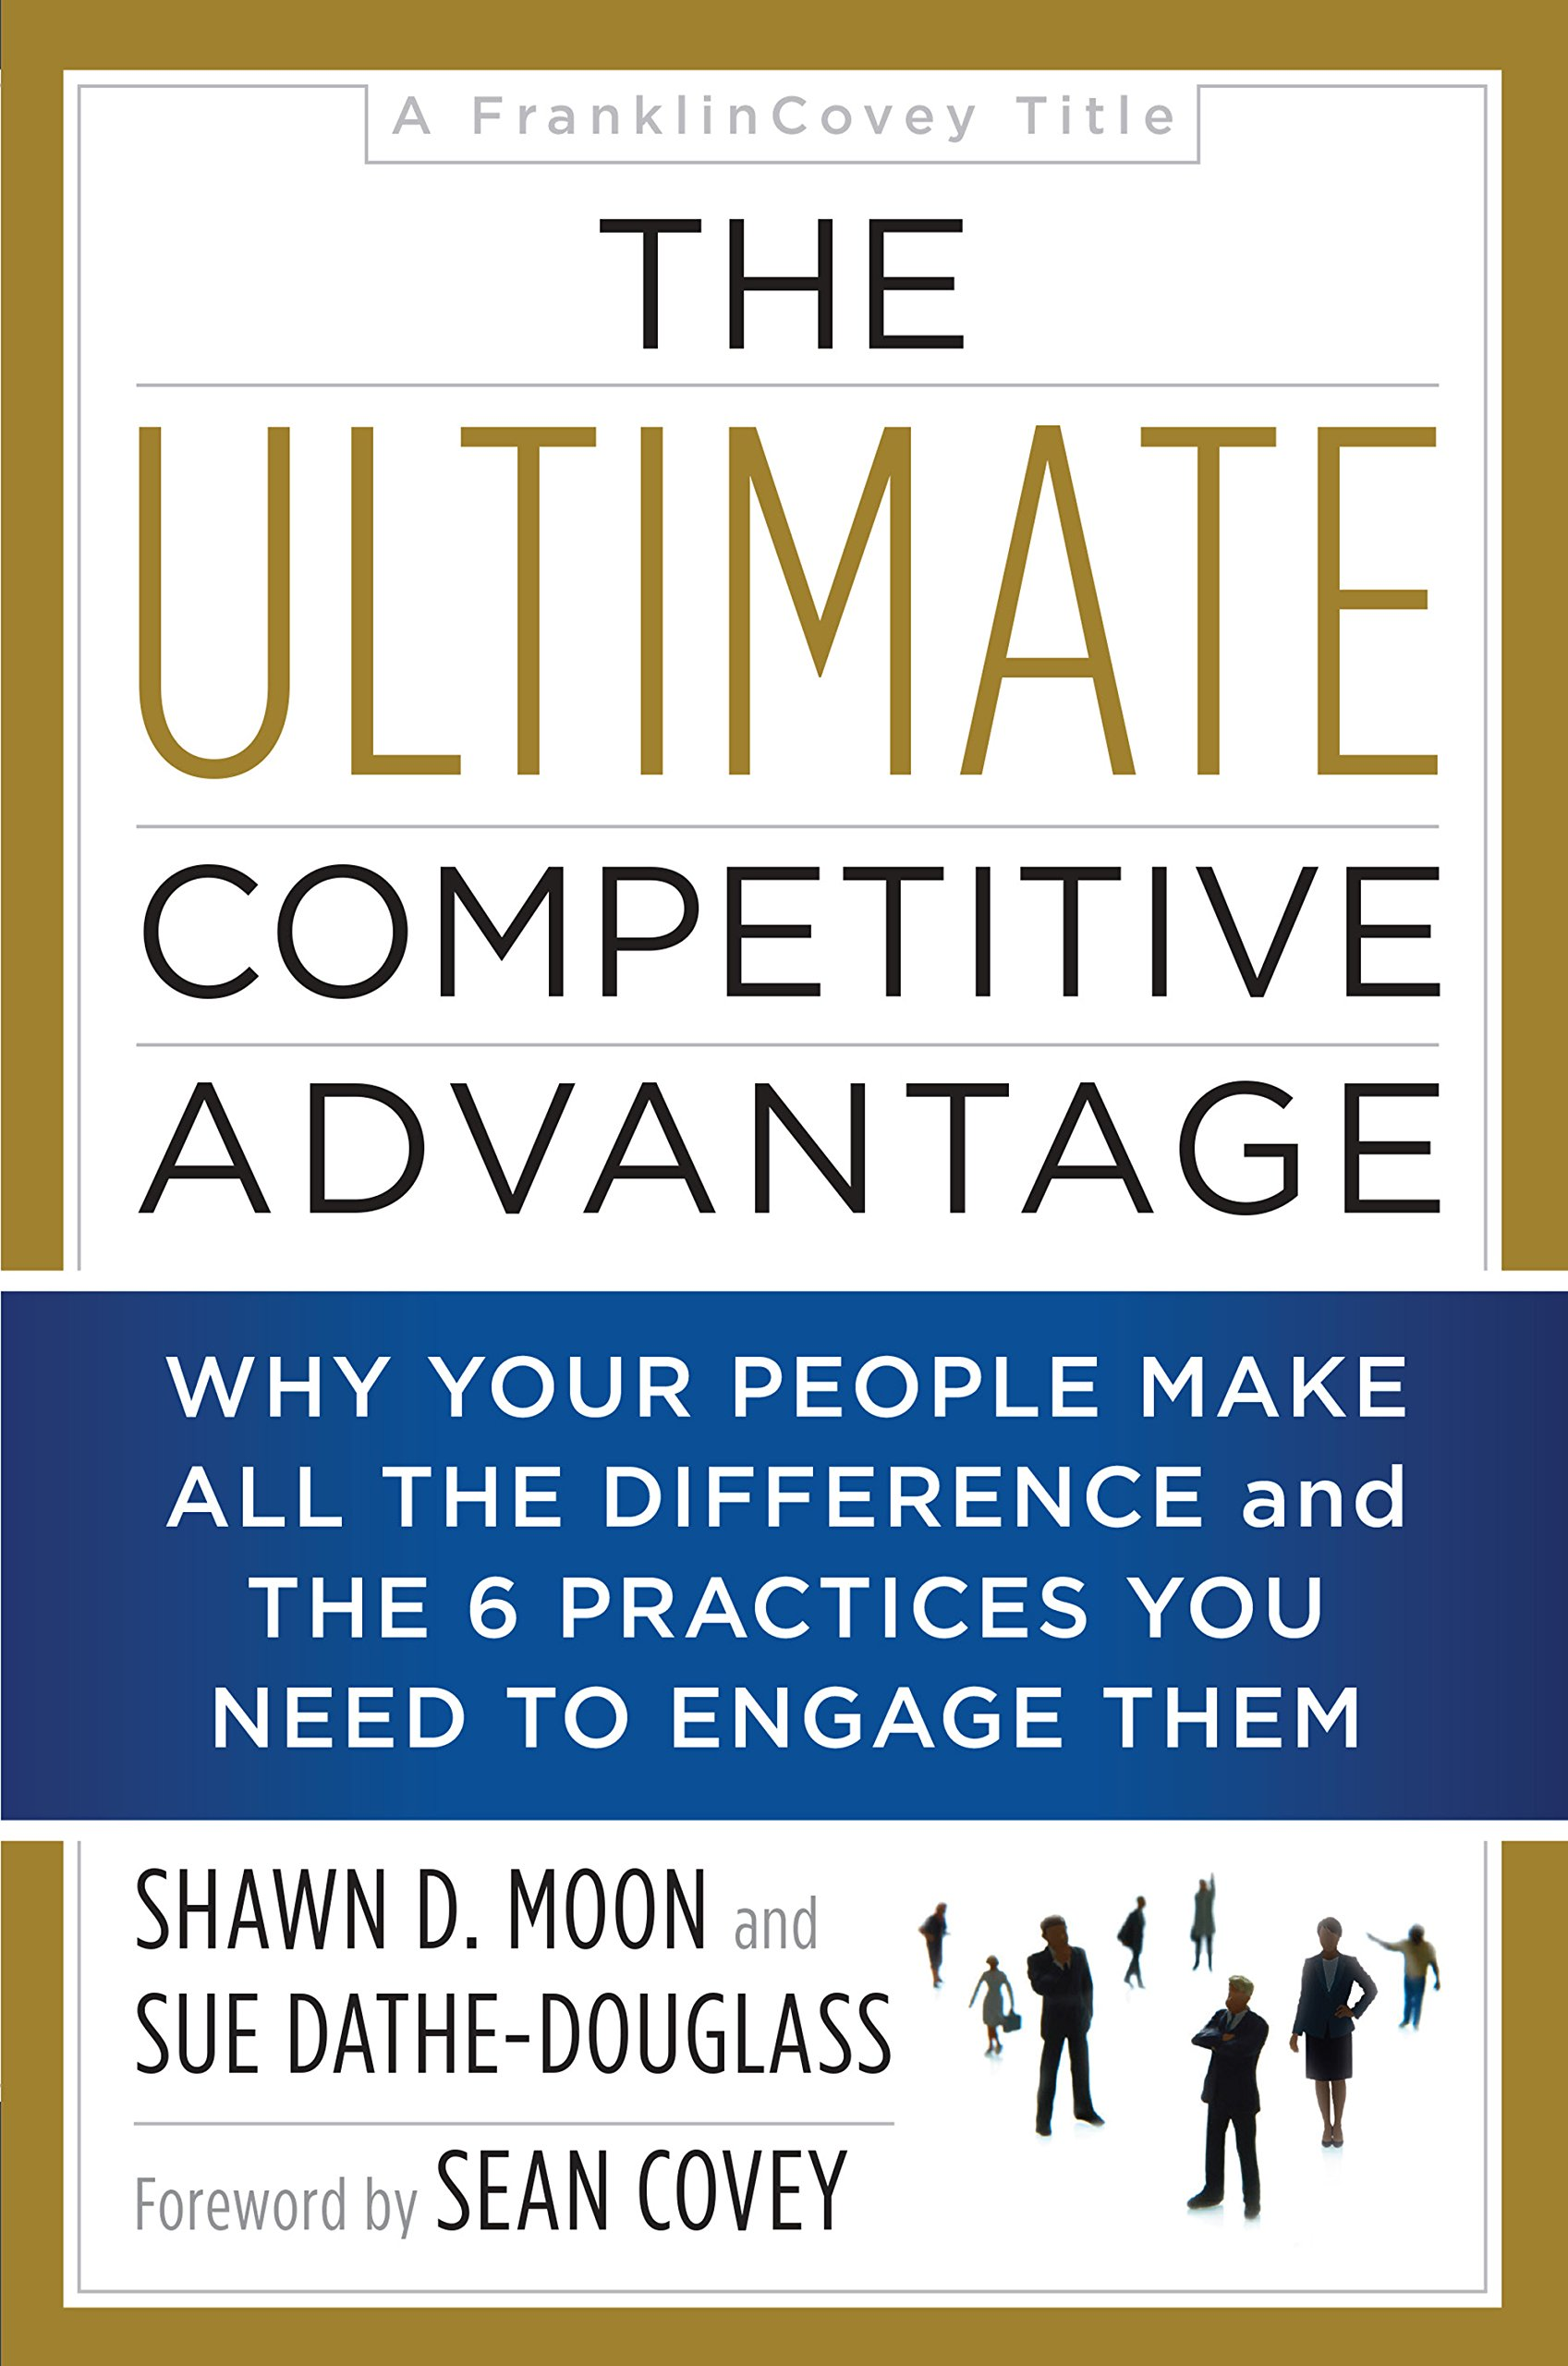 Image OfThe Ultimate Competitive Advantage: Why Your People Make All The Difference And The 6 Practices You Need To Engage Them (E...